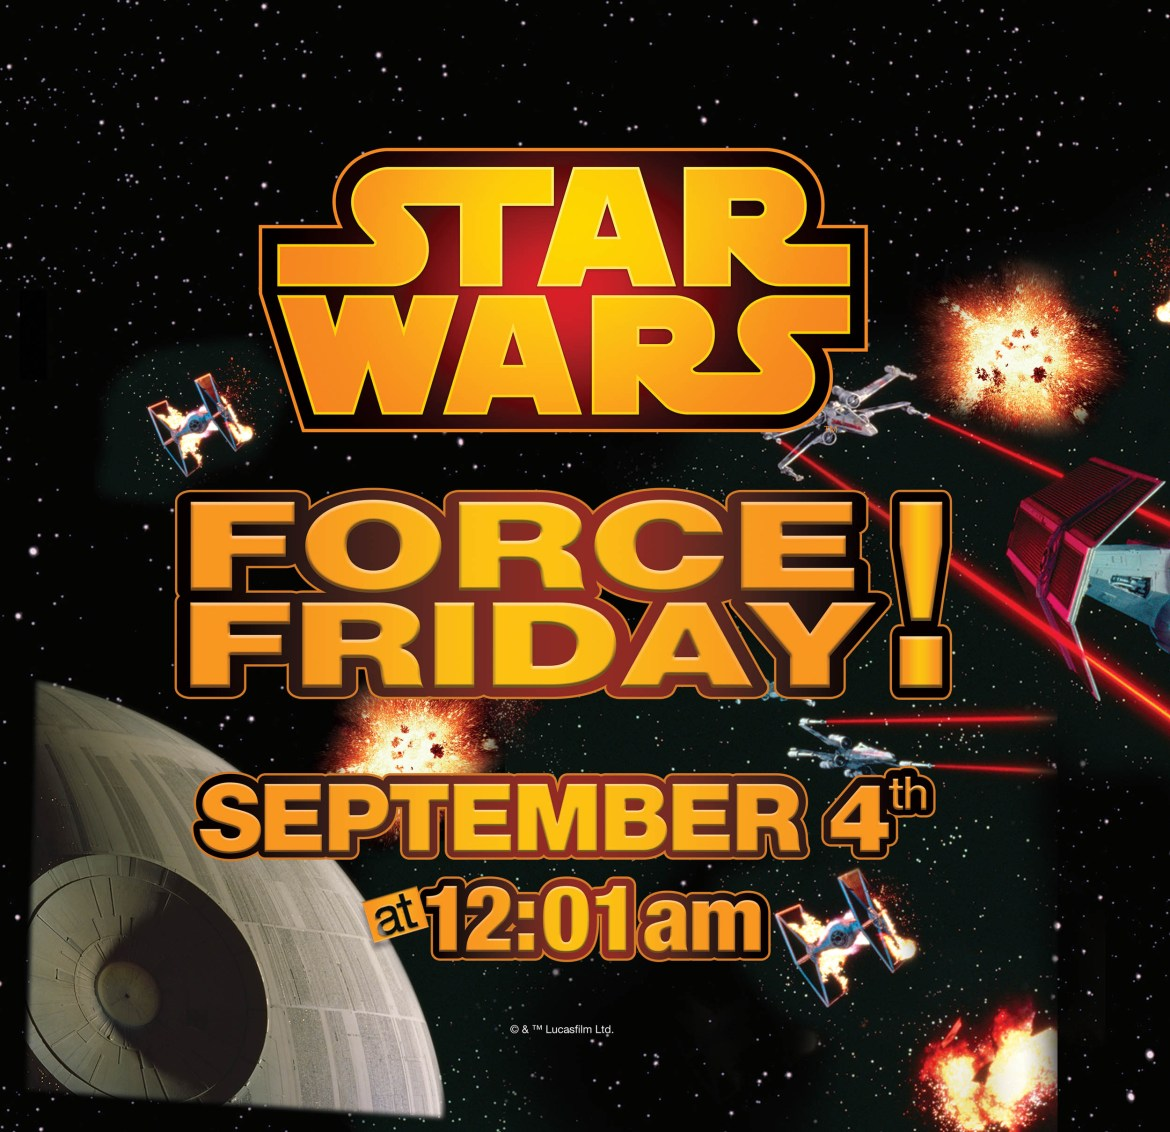 Toys R Us Star Wars Force Friday Press Release